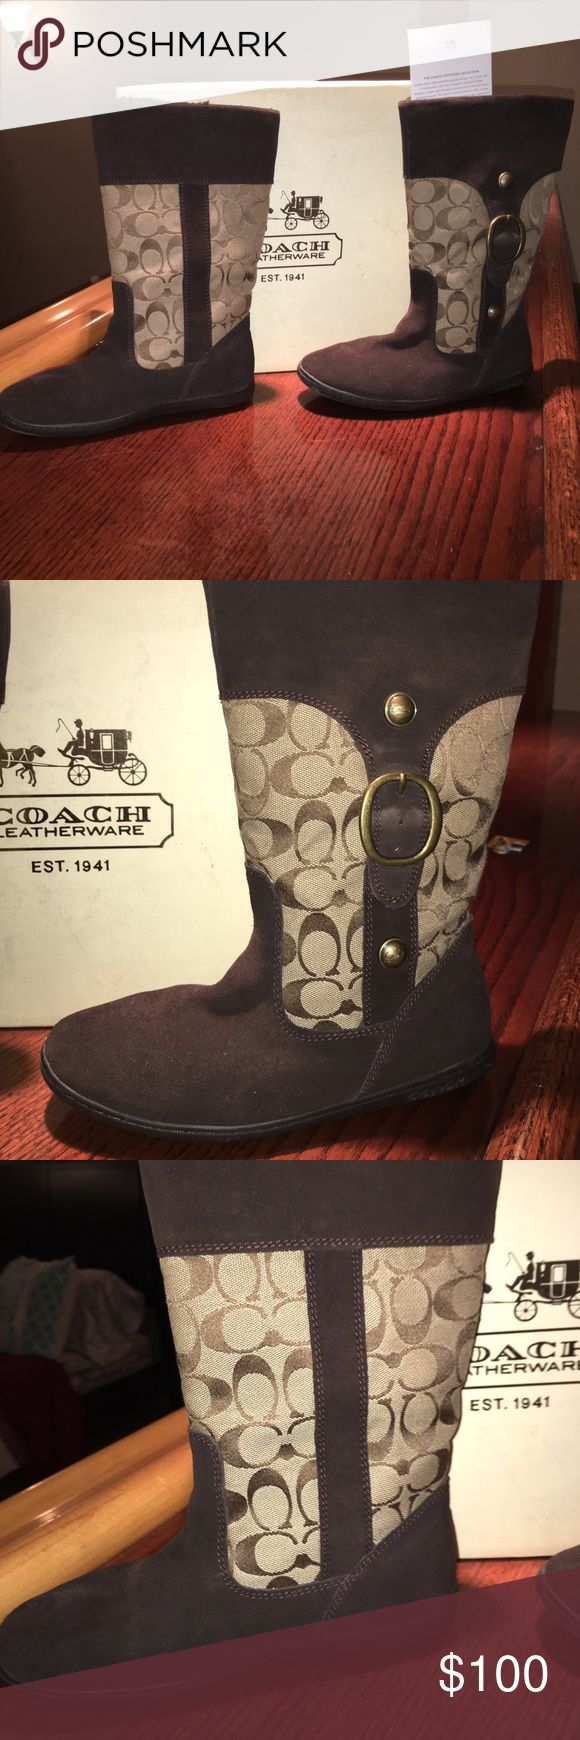 New Coach boots  Leatherware. Size 7 This wonderful   Coach signature boots are sit in my closet never used Coach Shoes Ankle Boots & Booties